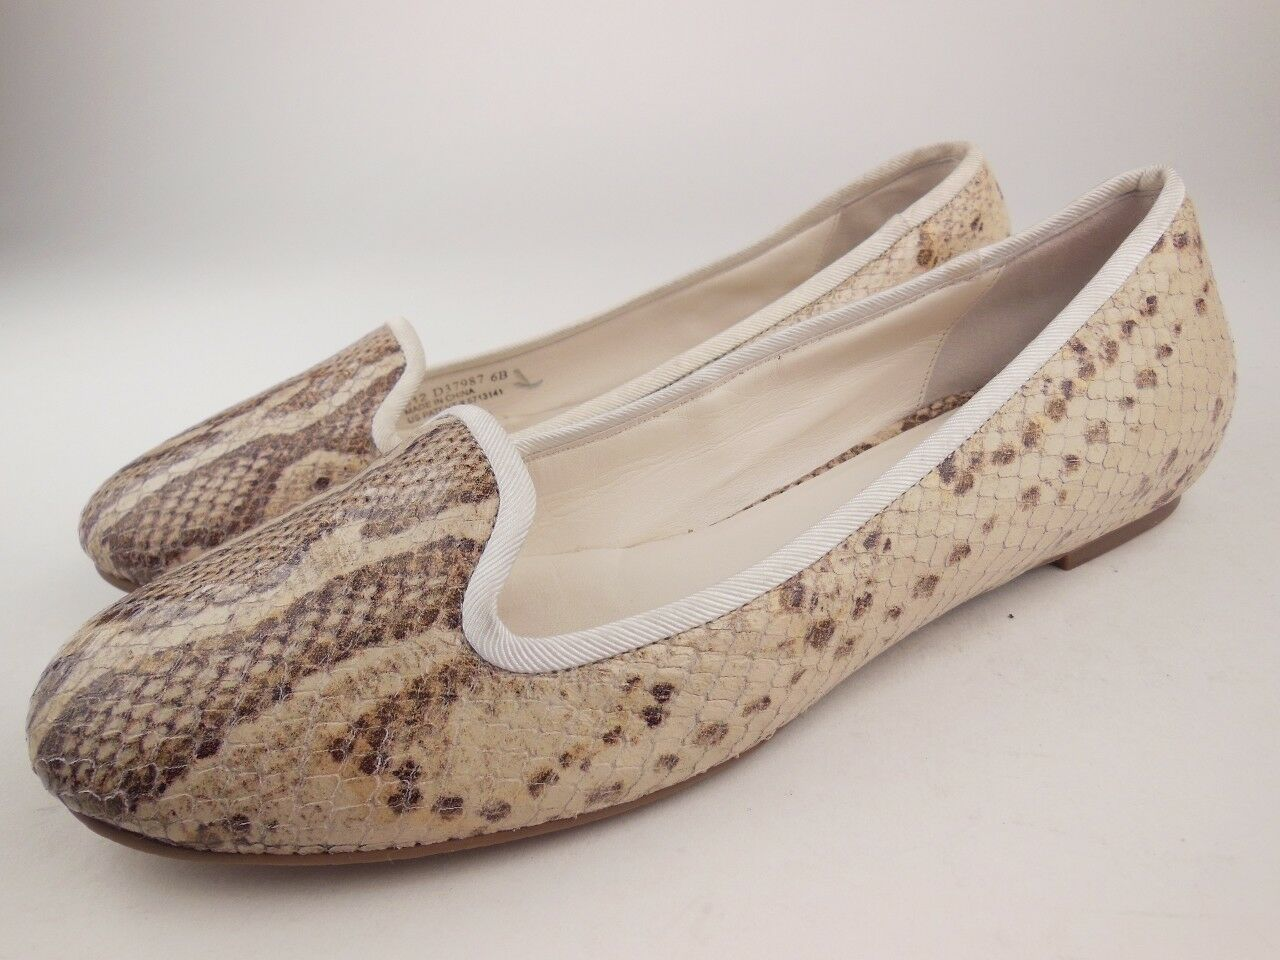 COLE HAAN Air Morgan Cream Snake Leather Ballet Flats shoes Women's Size 6 B